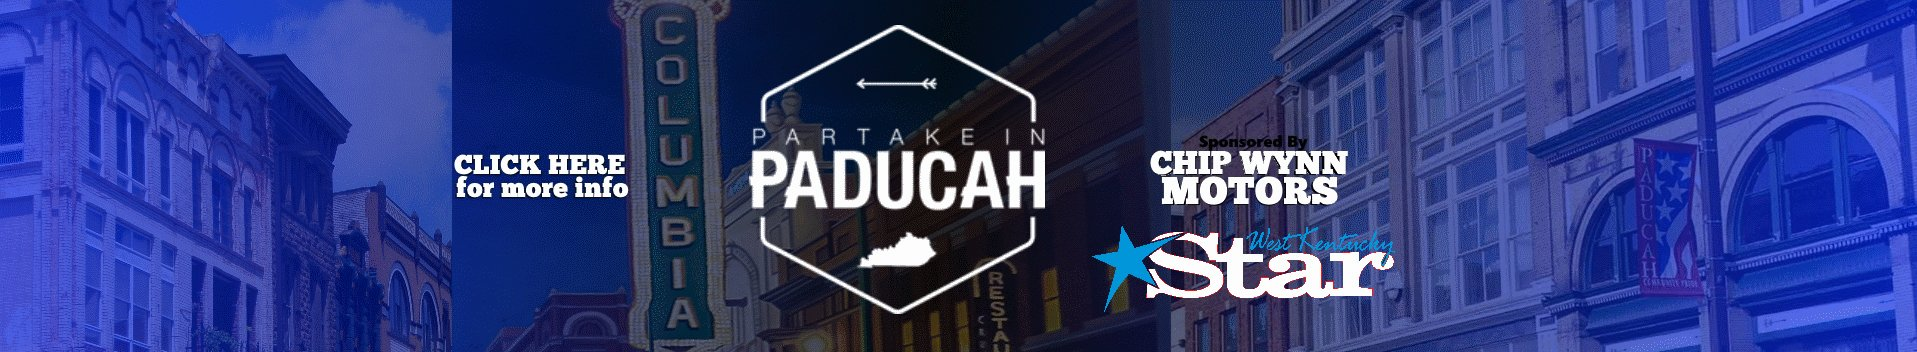 paducah_new.jpg